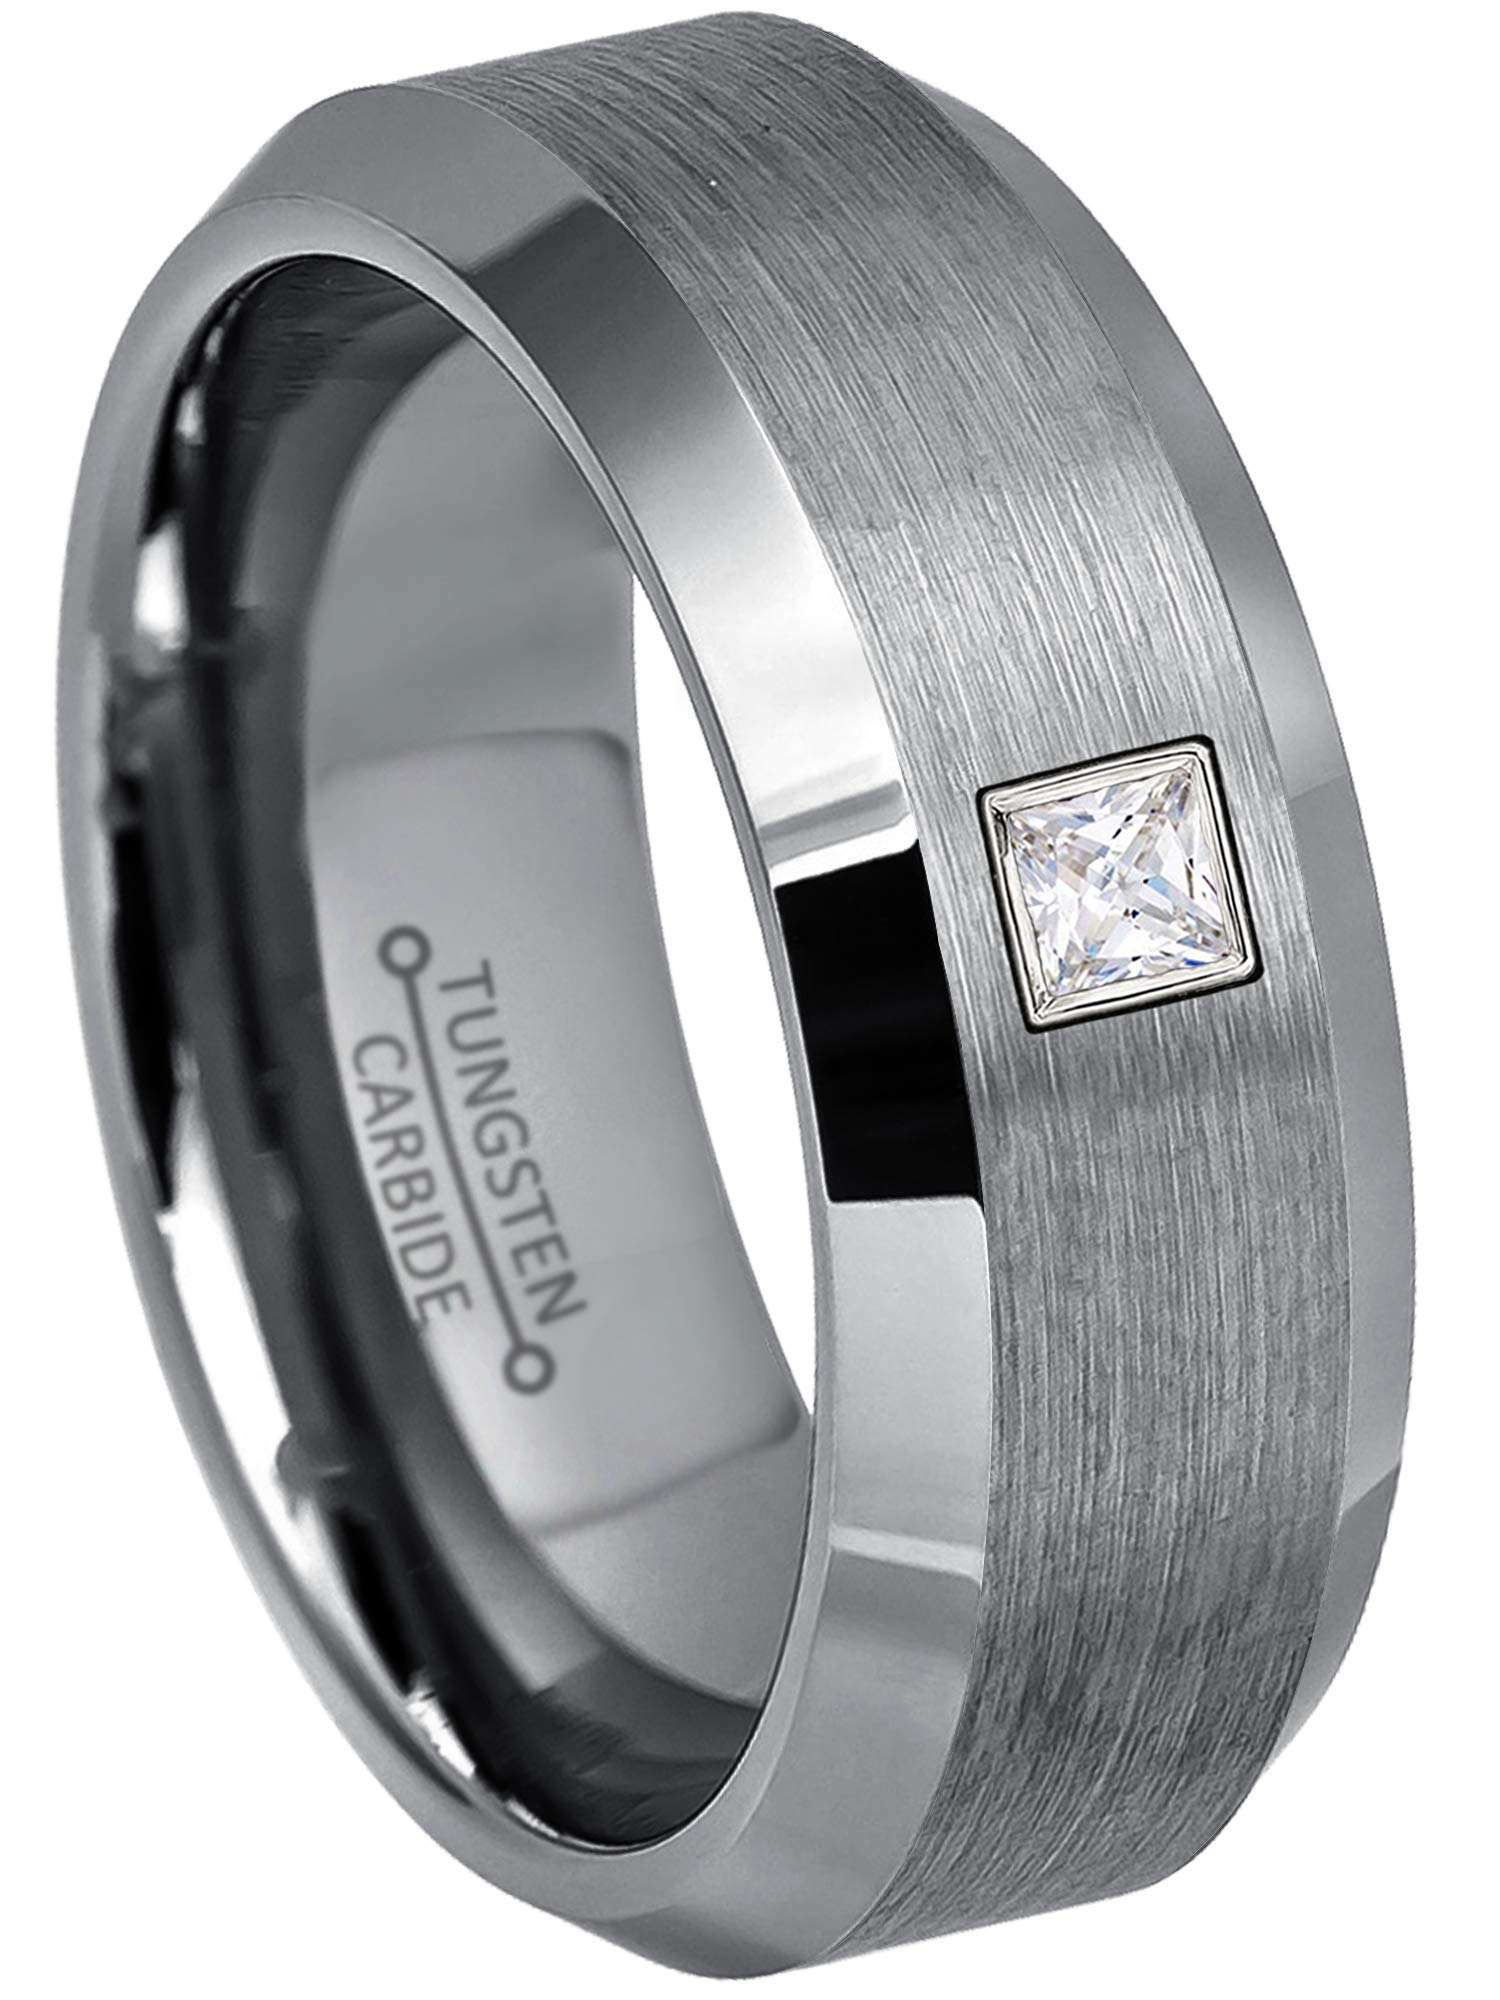 0.10ctw Solitaire Princess Cut Diamond Tungsten Ring - 8MM Brushed Beveled Edge Tungsten Carbide Wedding Band - April Birthstone Ring - s12.5